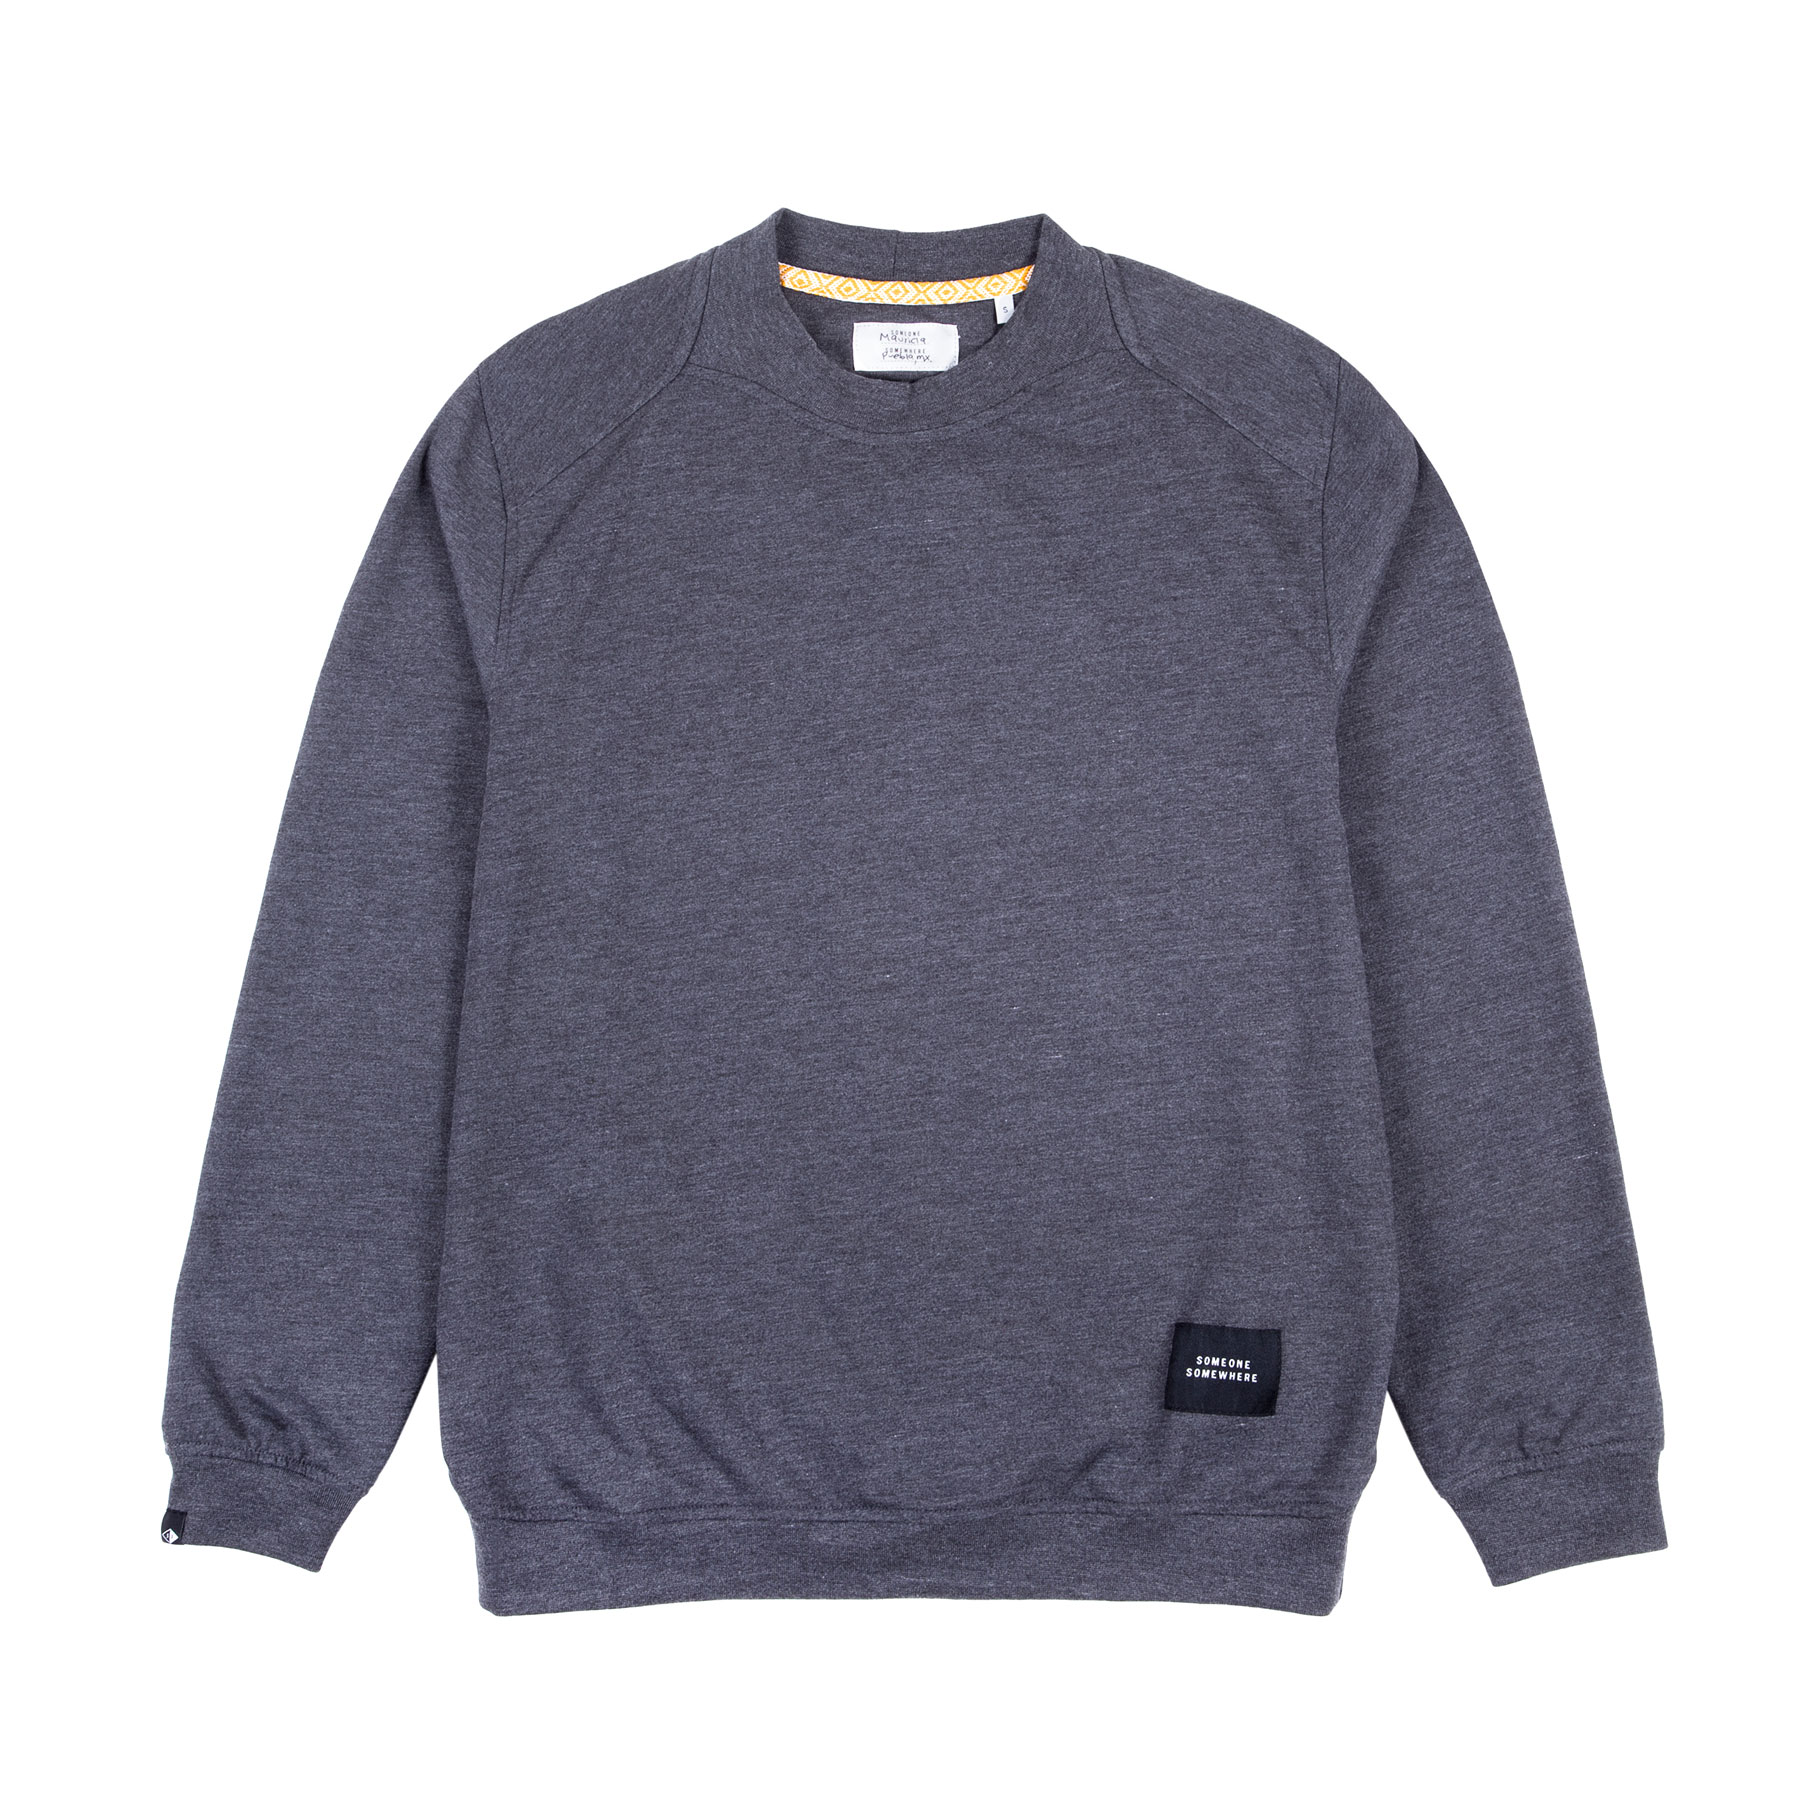 6 Clever Items 12/4/20 - Someone Somewhere Lifeproof Pullover